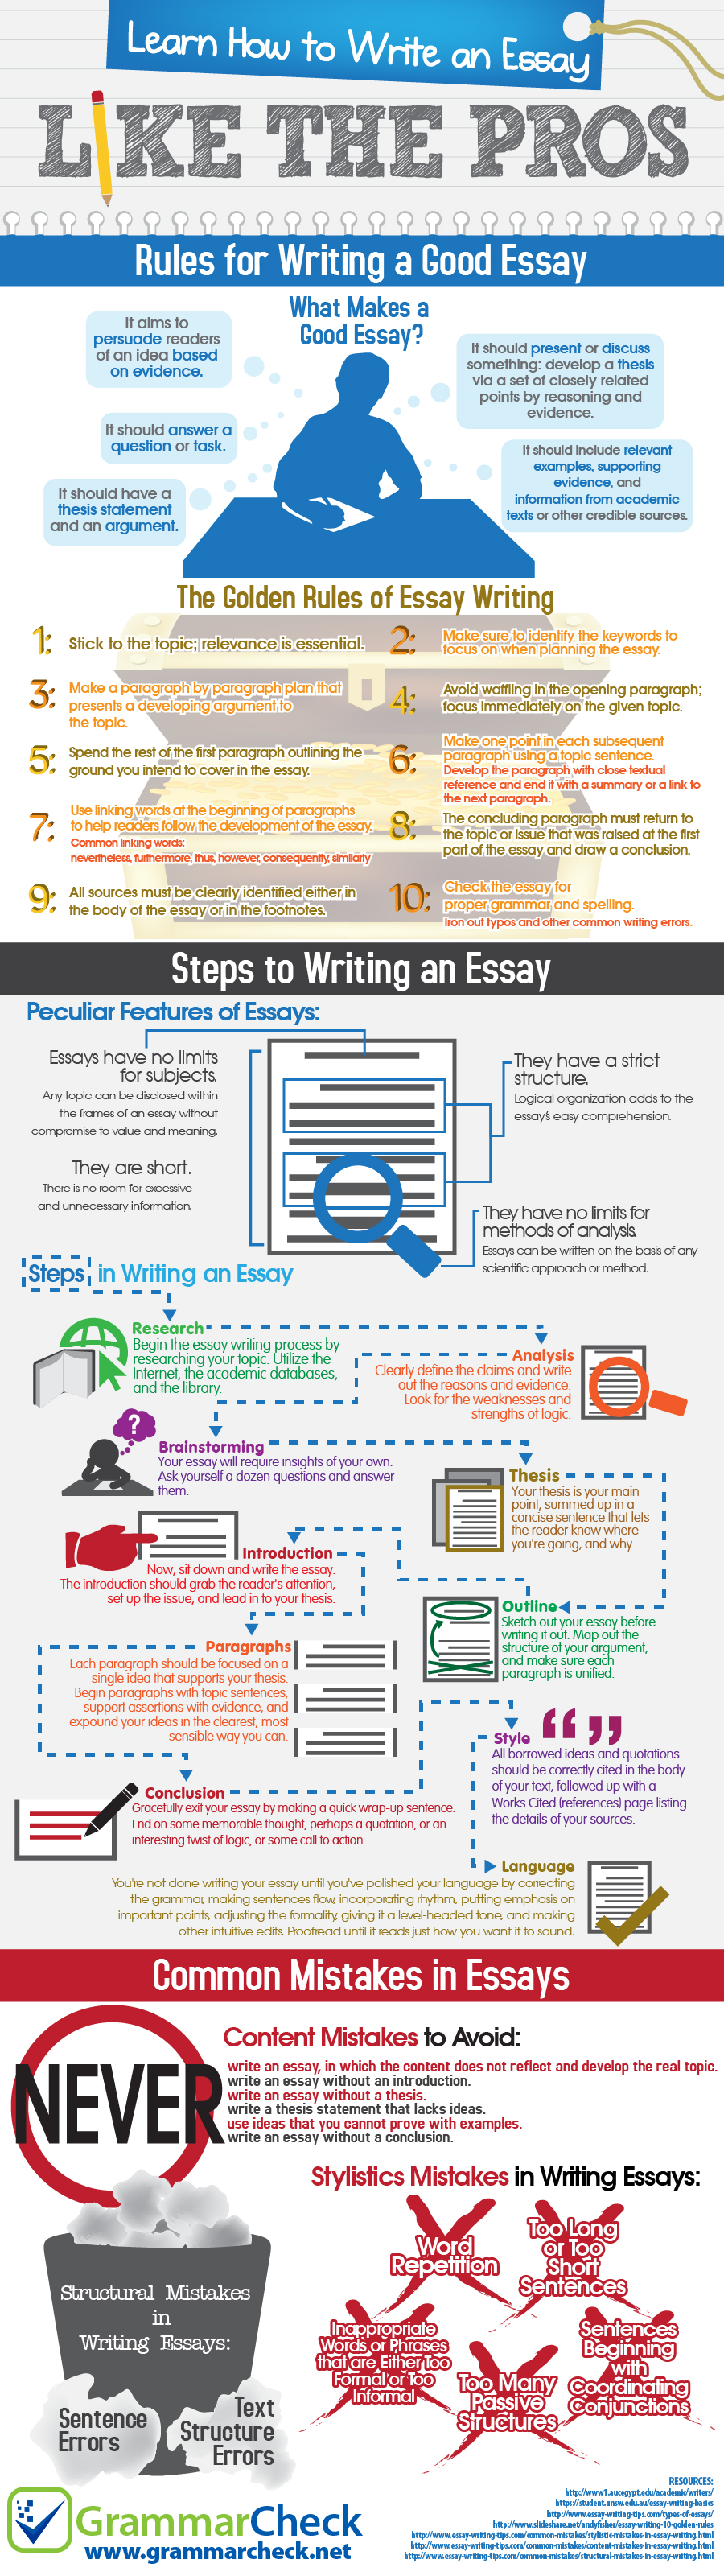 basic rules writing essay good reminders for writing essay hooks